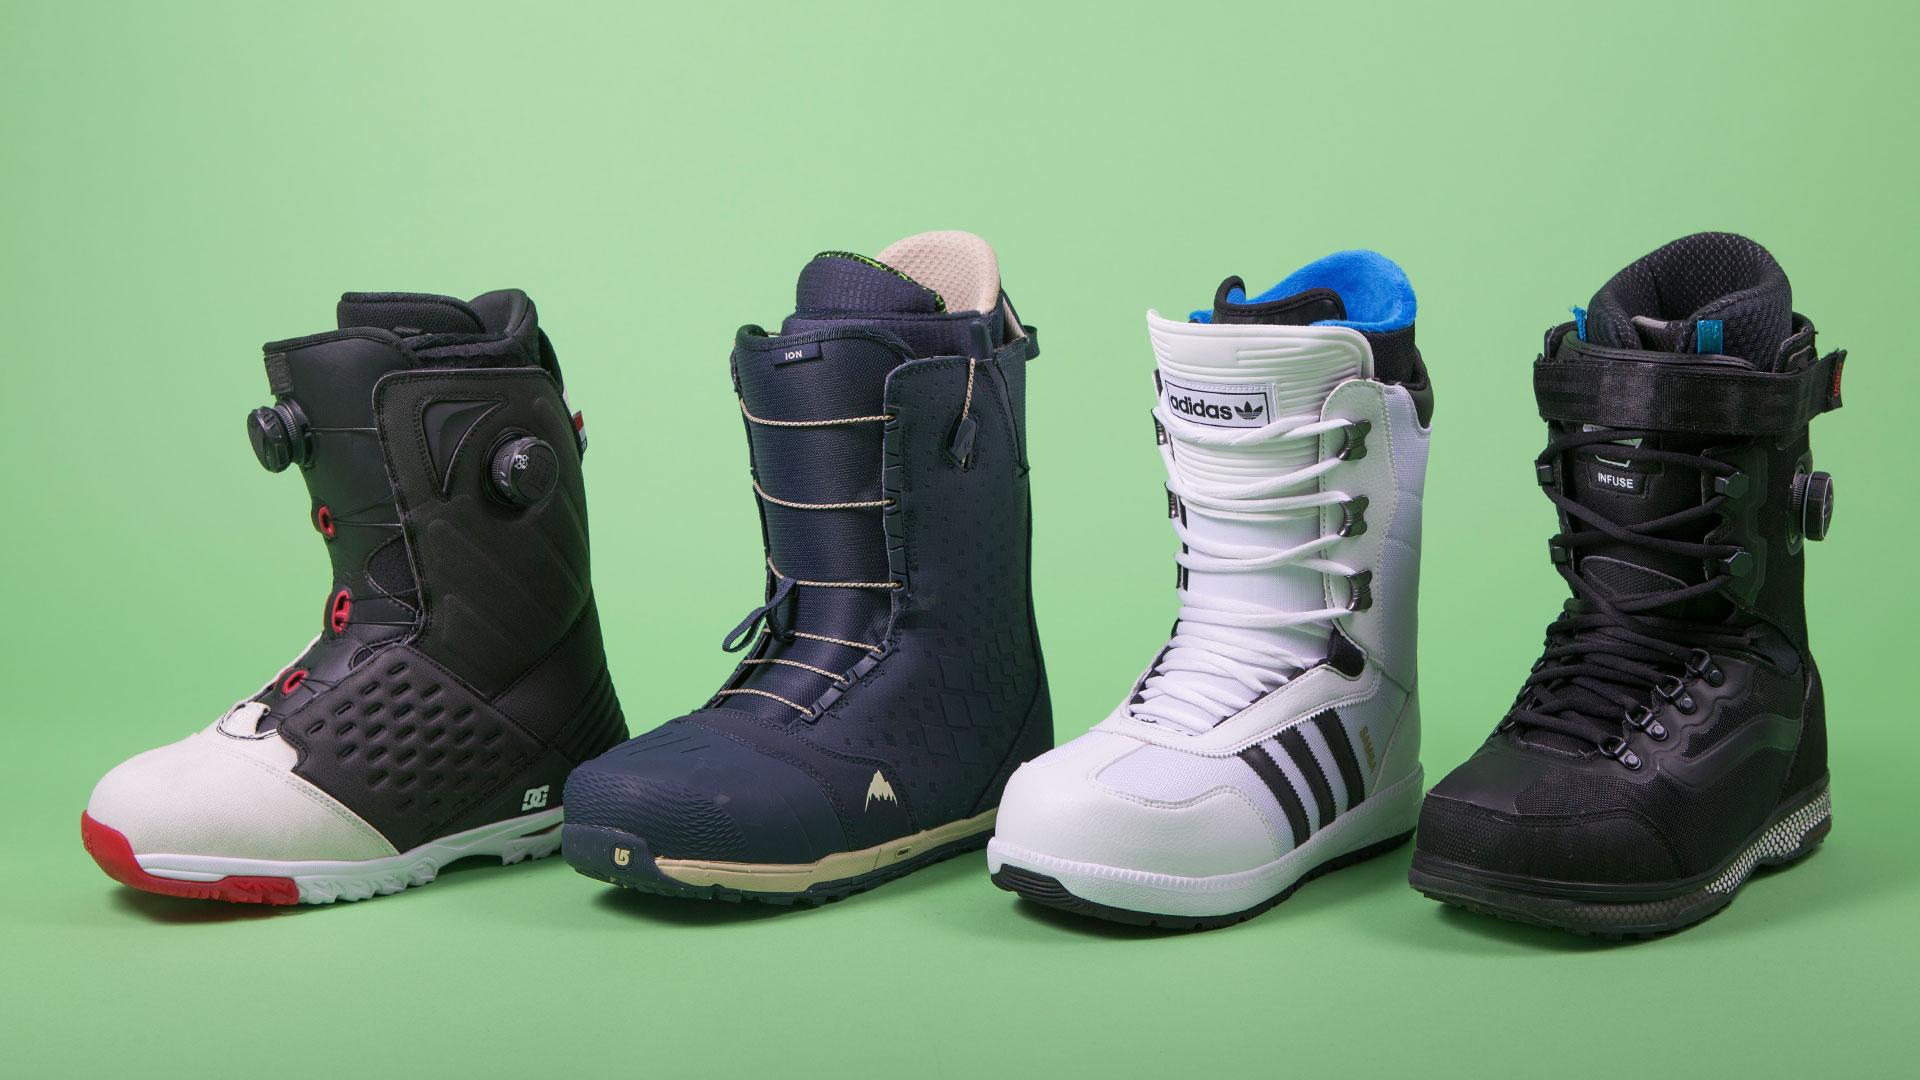 Buy Snowboarding Boots